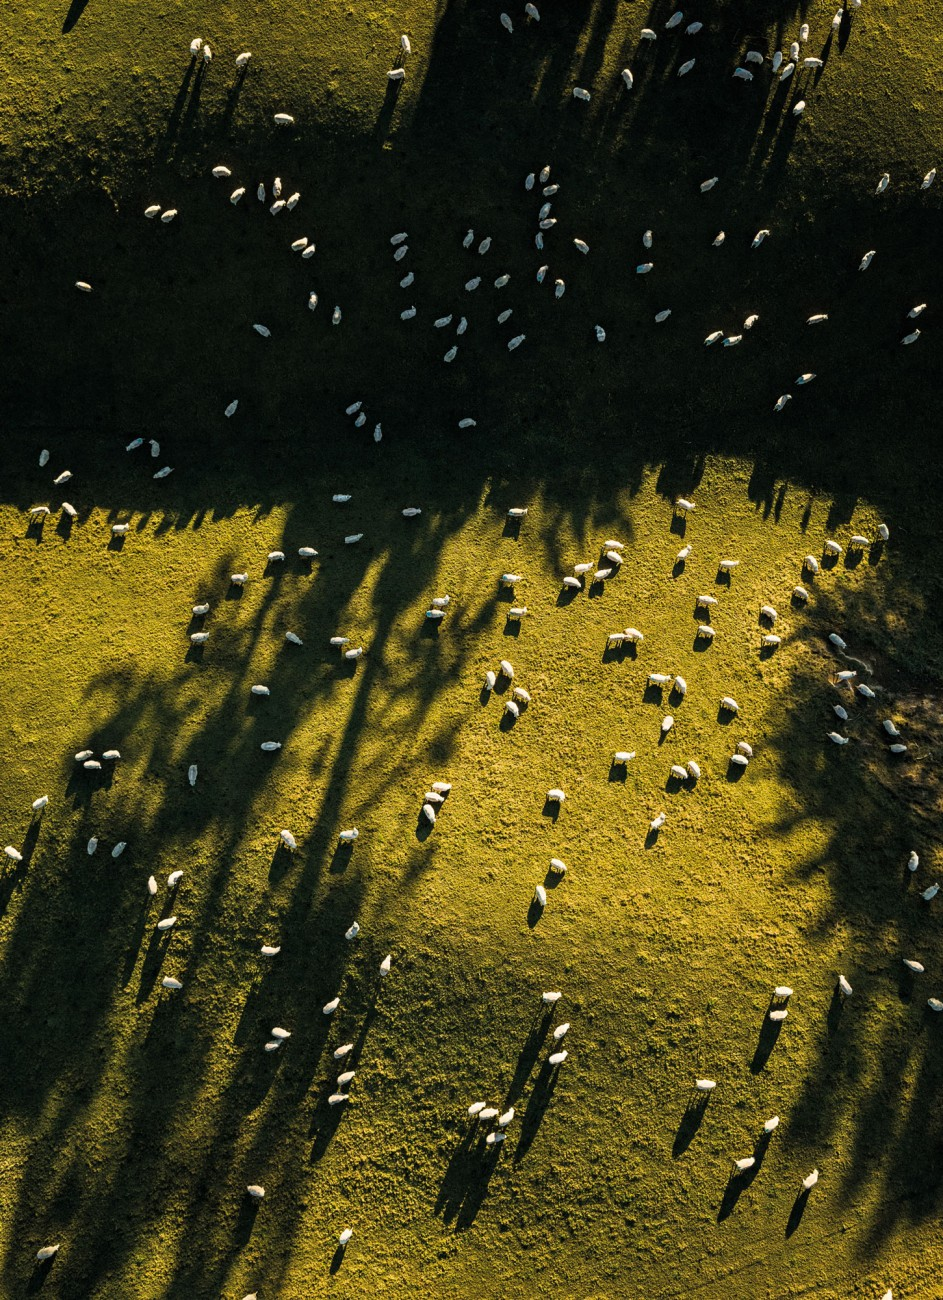 Sheep graze on a sunny hillock near Gore, Southland. Analysis by AgResearch has shown that the greatest portion of carbon emissions occurrs on the farm, rather than in transport of agricultural products. As productivity increases, the carbon footprint reduces, making New Zealand farms internationally competitive from an emissions point of view. However there can be up to a two-fold variation between individual farms, meaning there's still plenty of potential for efficiency gains.